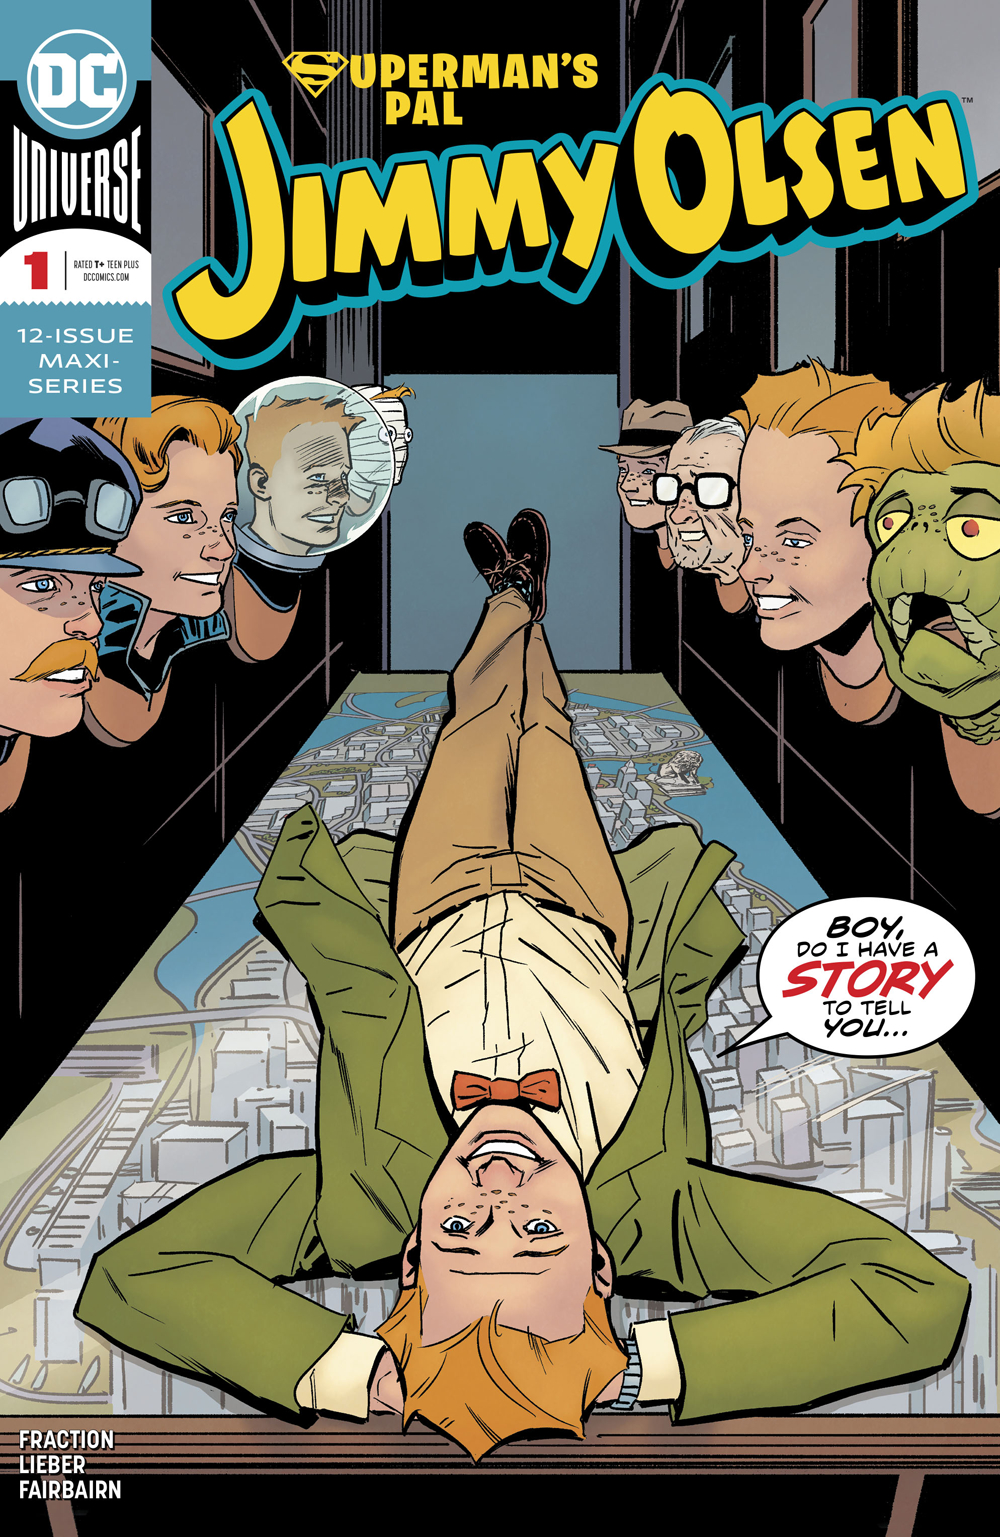 SUPERMANS PAL JIMMY OLSEN #1 (OF 12)